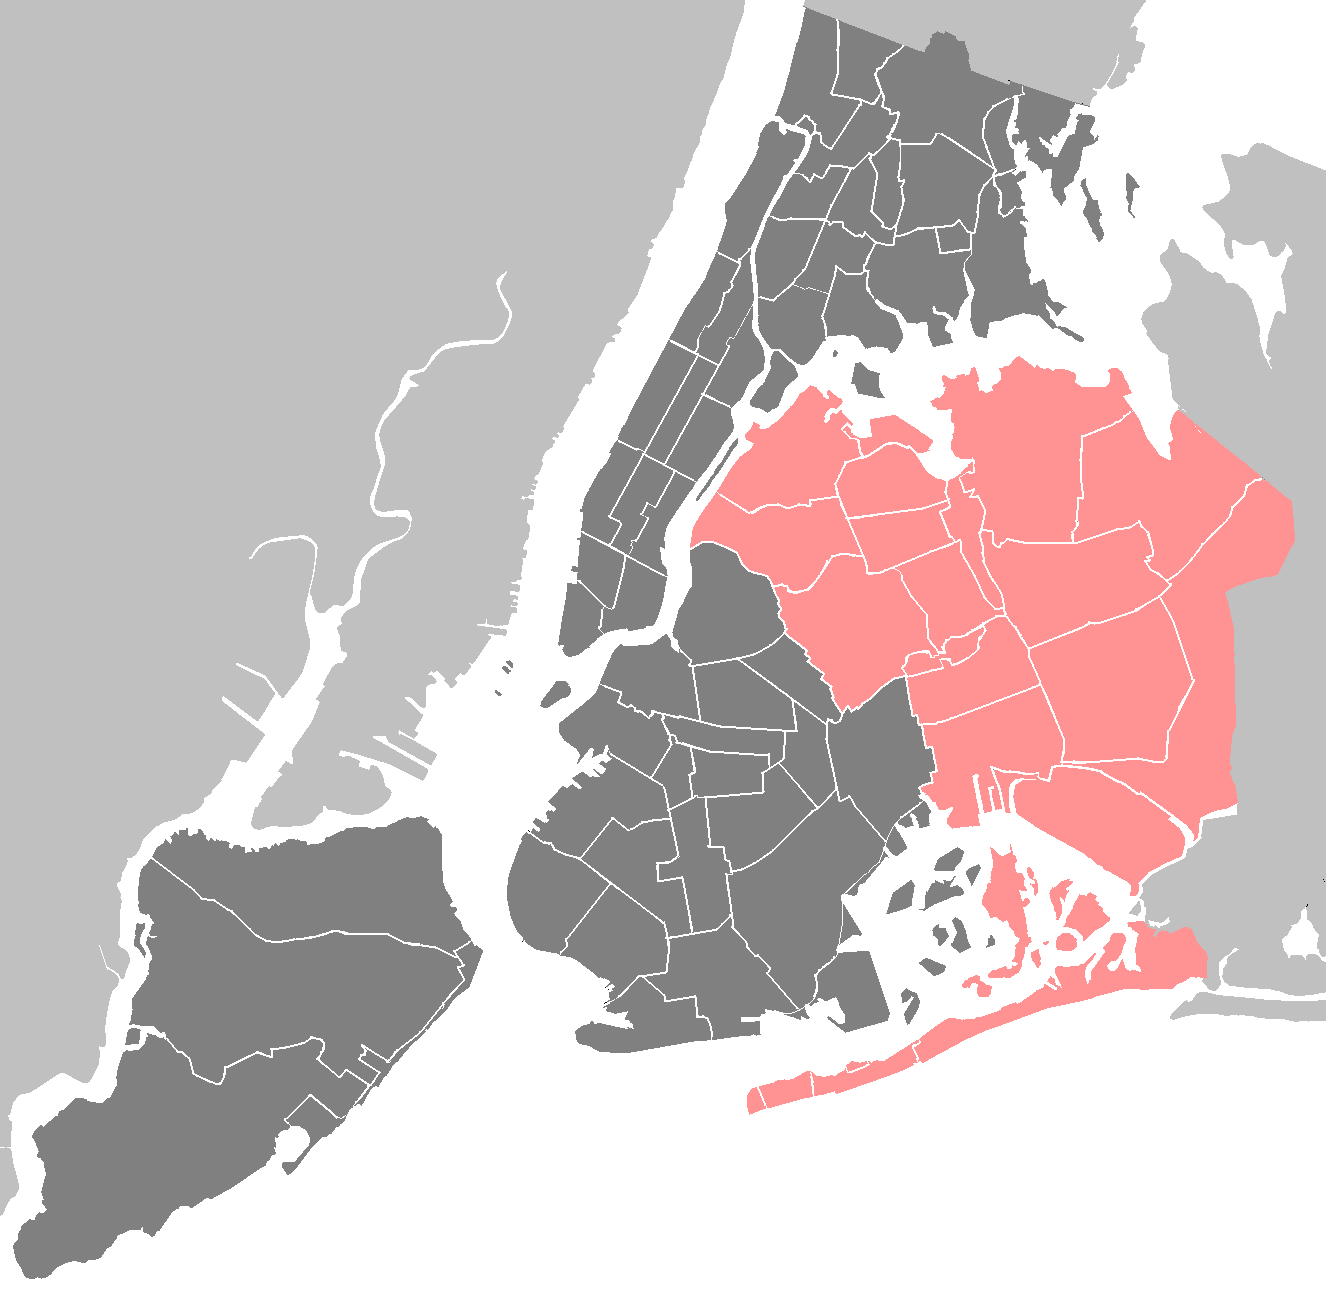 New York City Queens • Mapsof.net